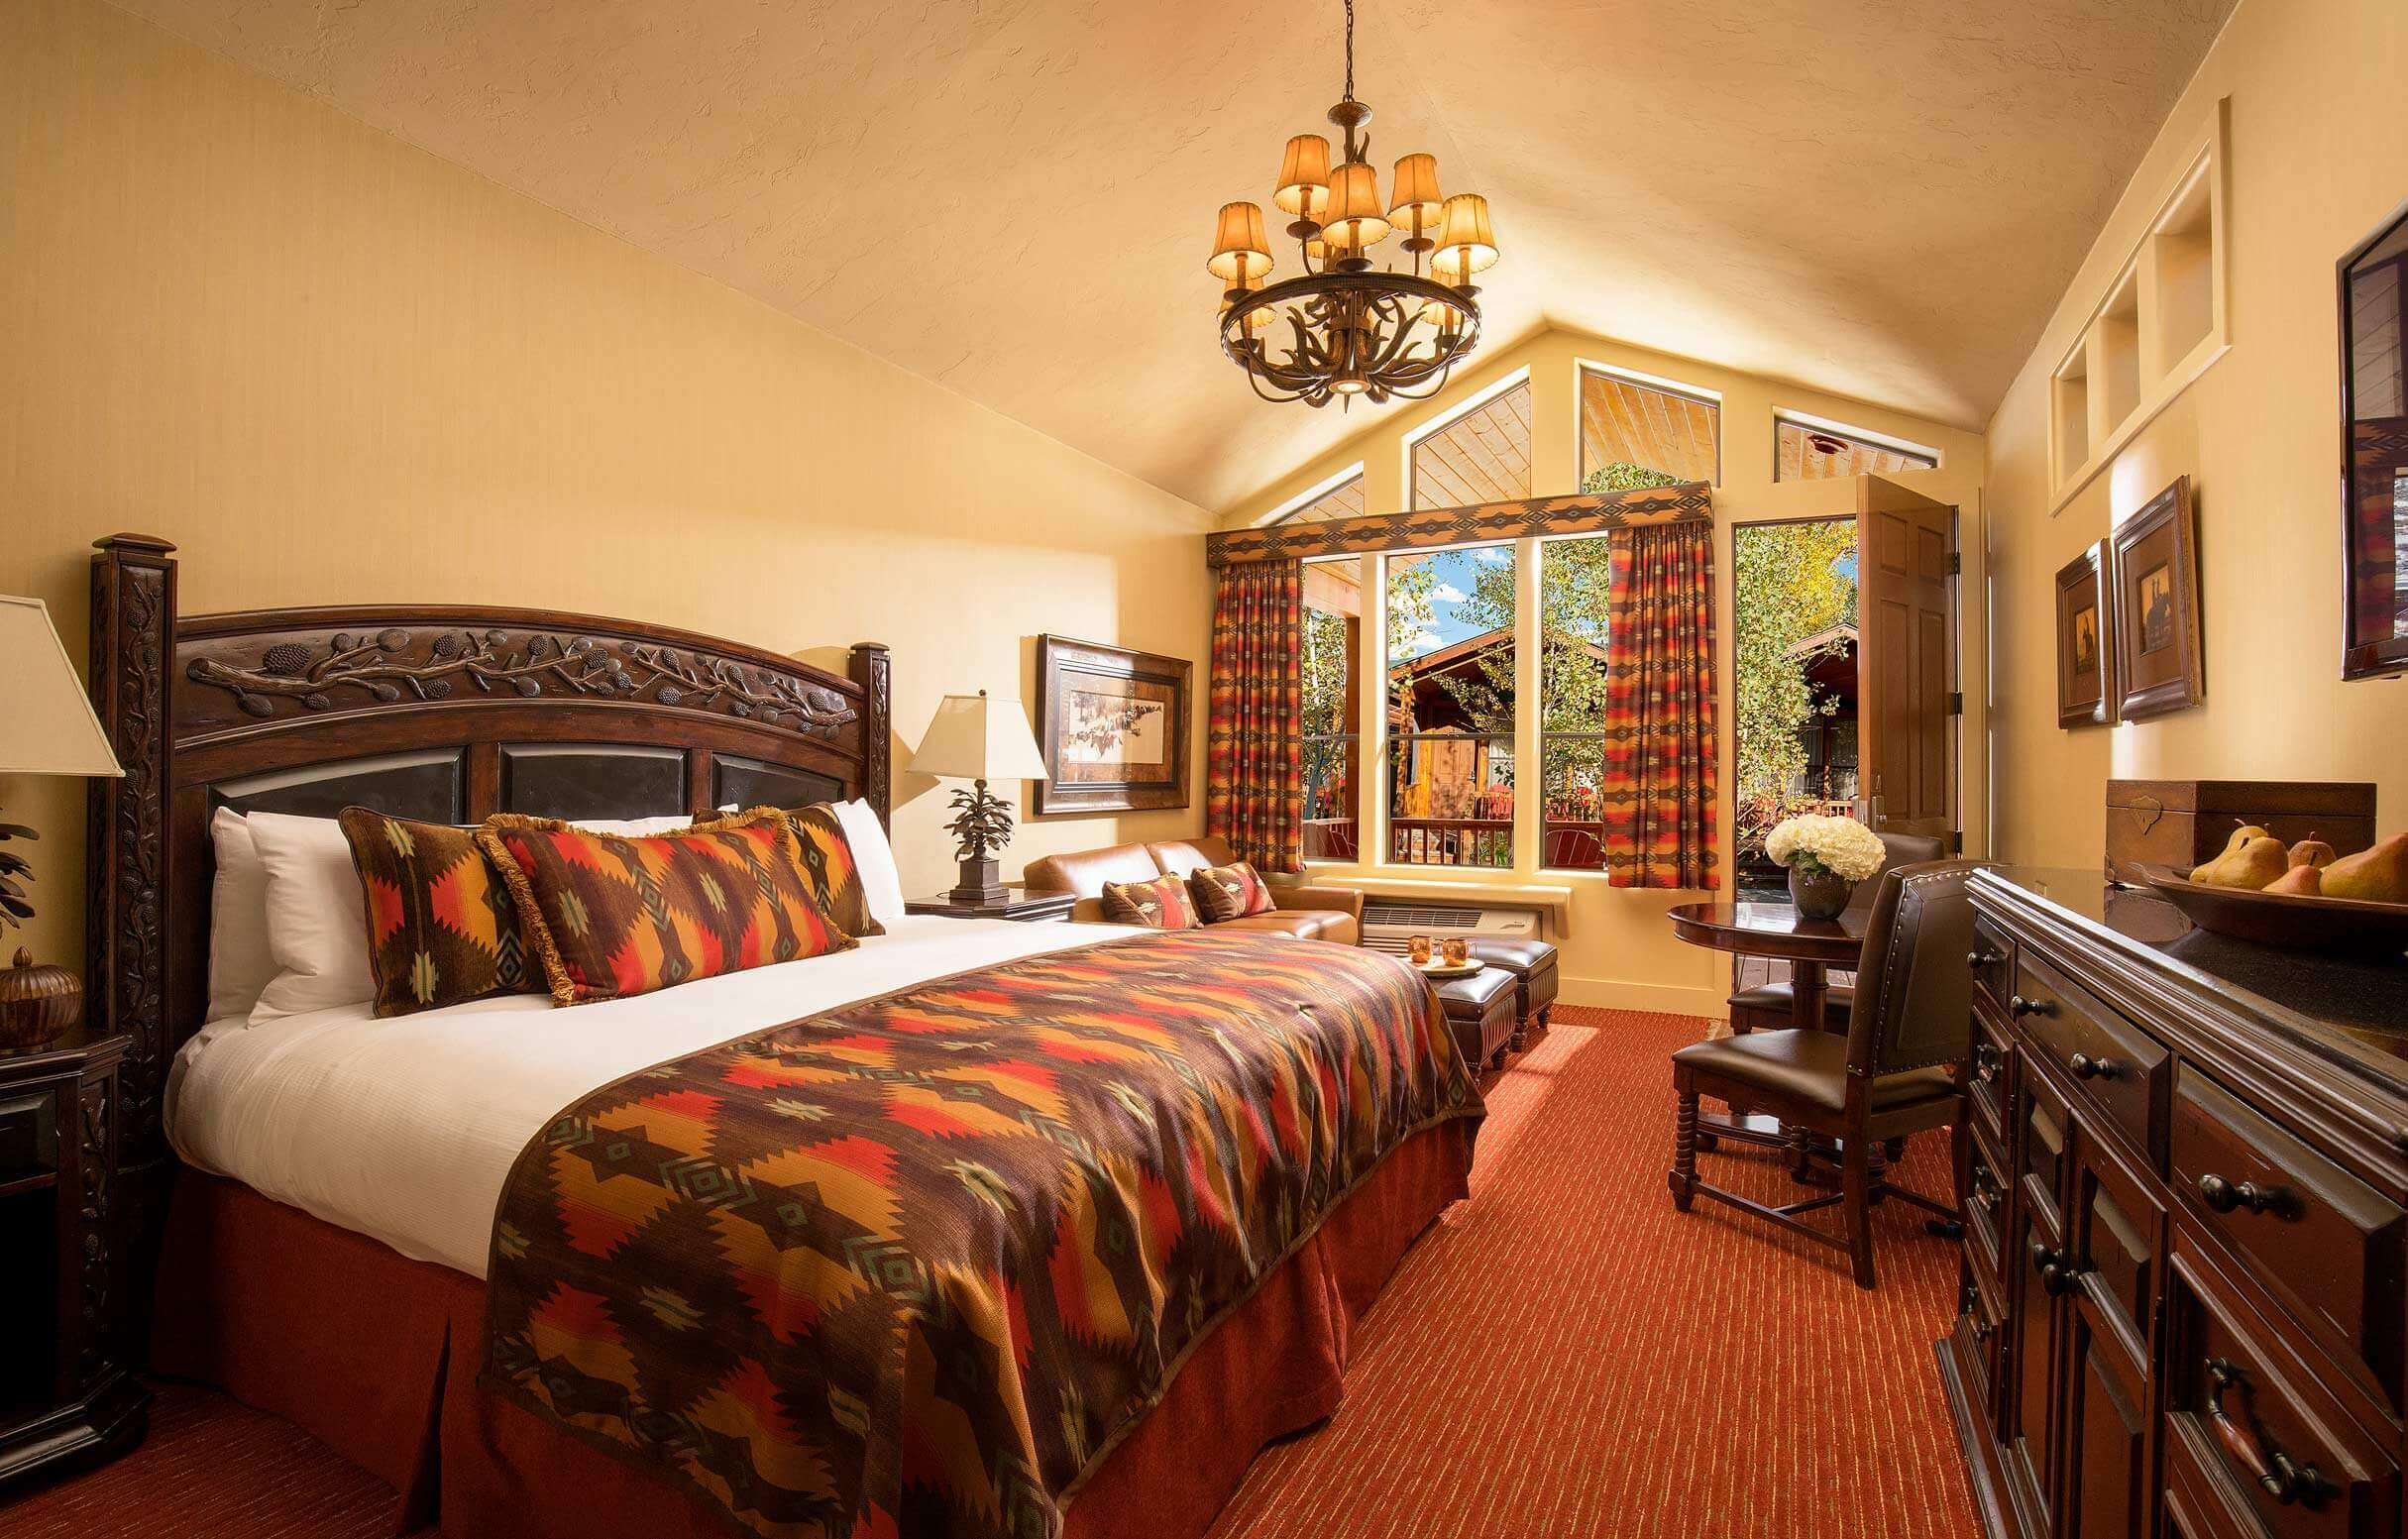 luxury hotel room with leather couches and king size bed